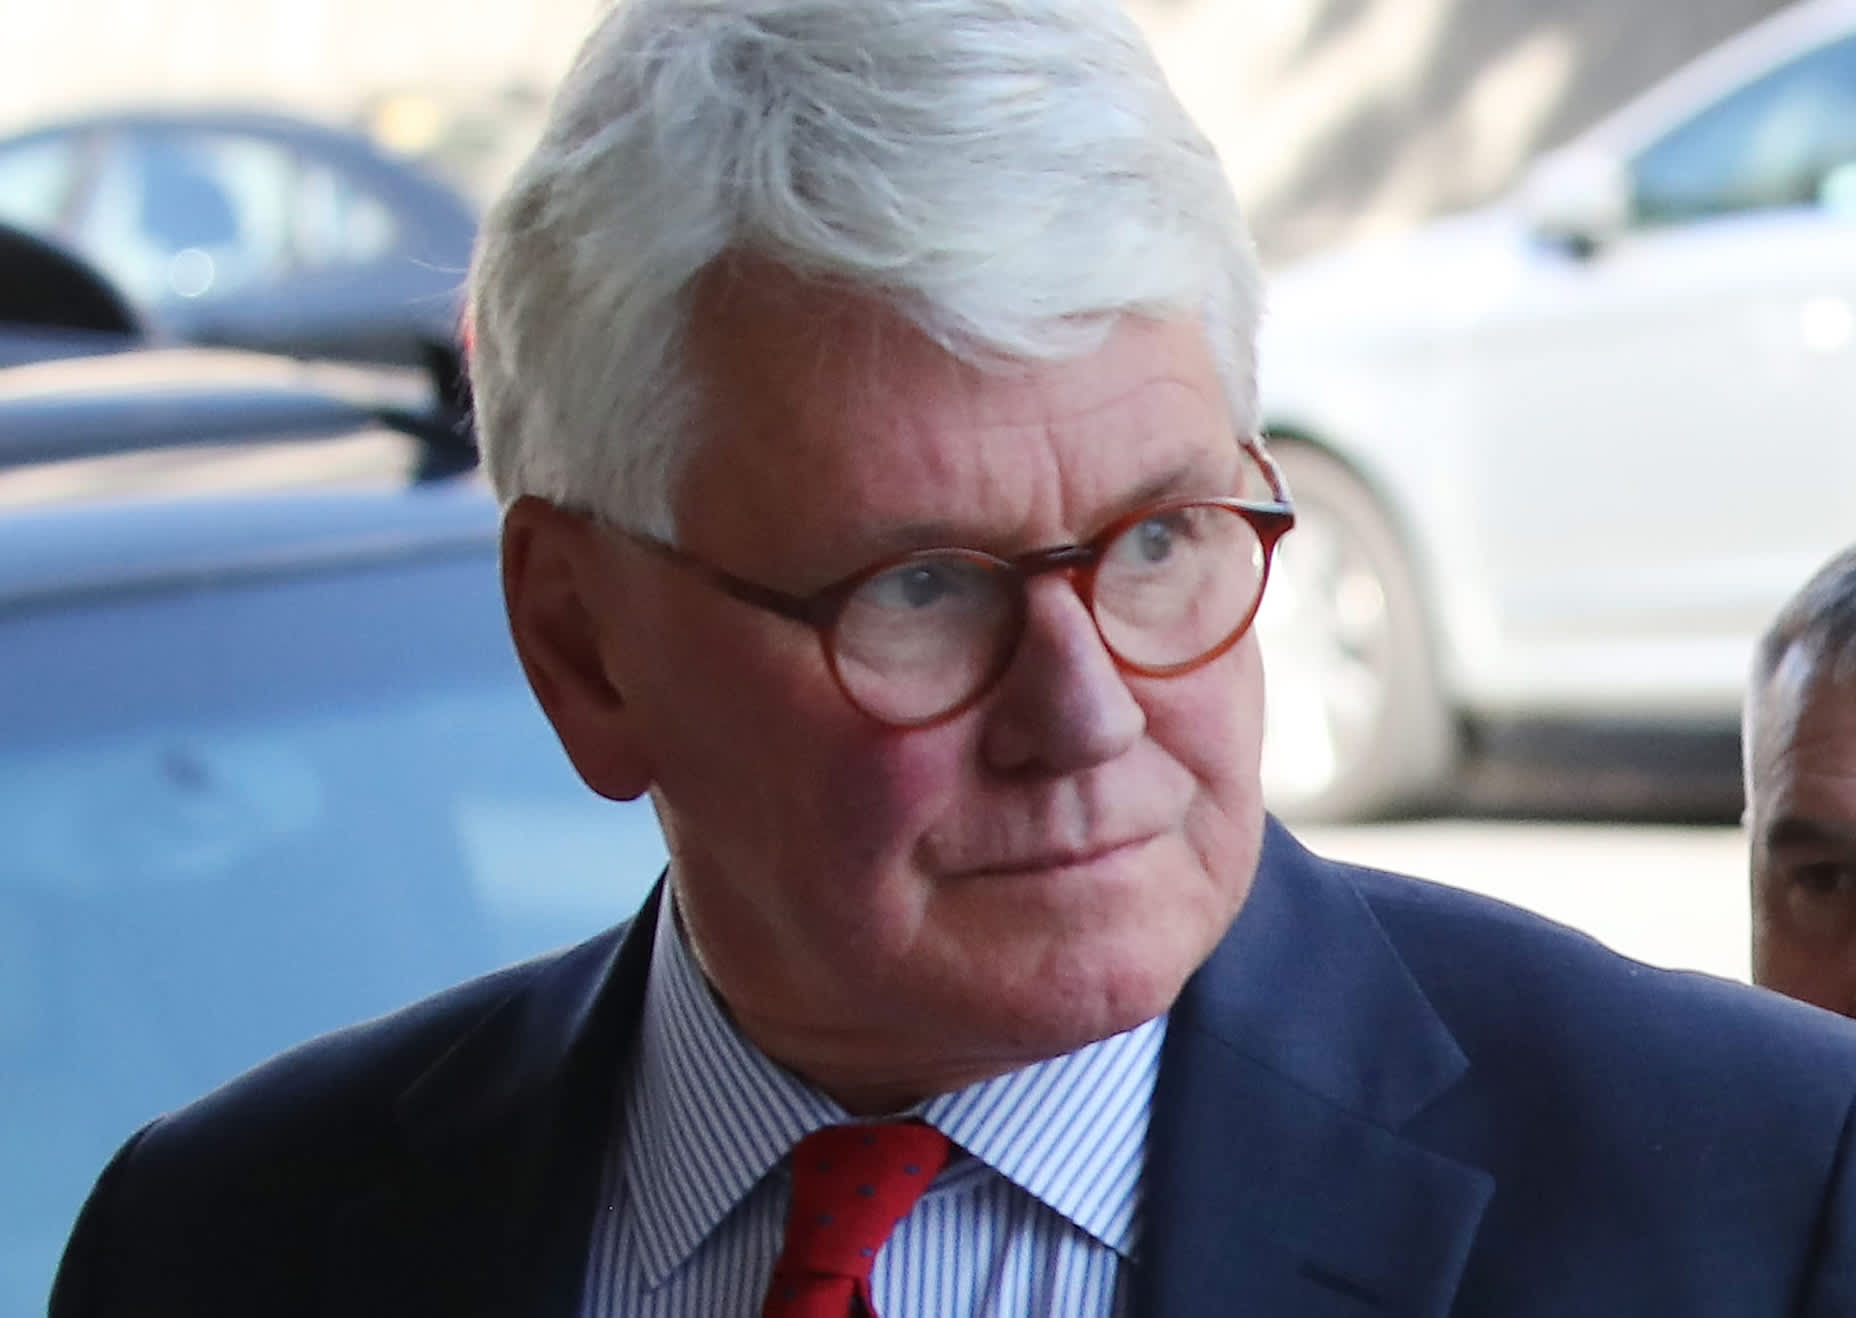 Obama White House counsel Gregory Craig charged by federal